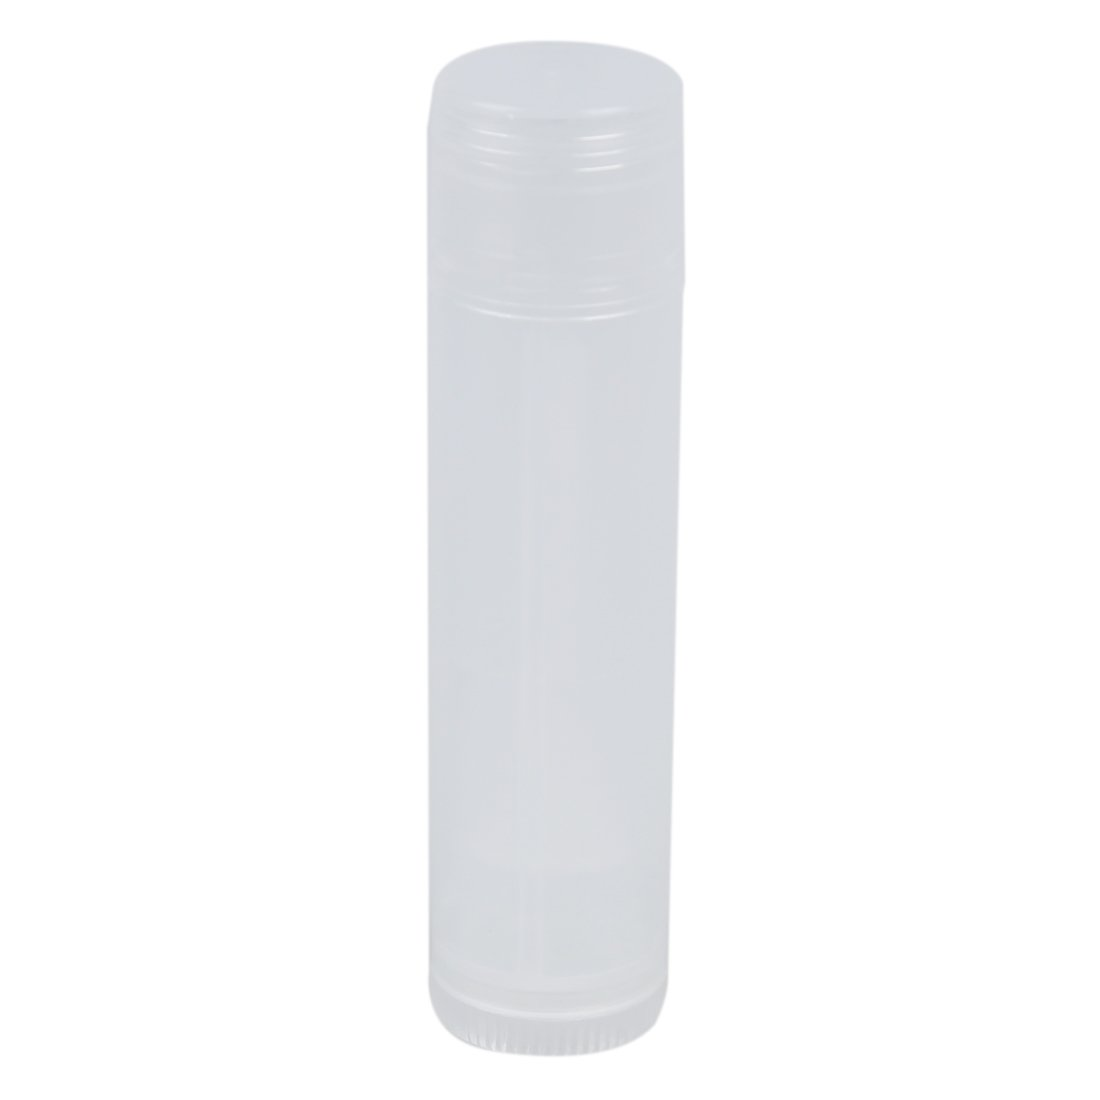 SODIAL(R) 25 Lip Balm Tubes with Caps (Natural/Clear) NEW 013201A2